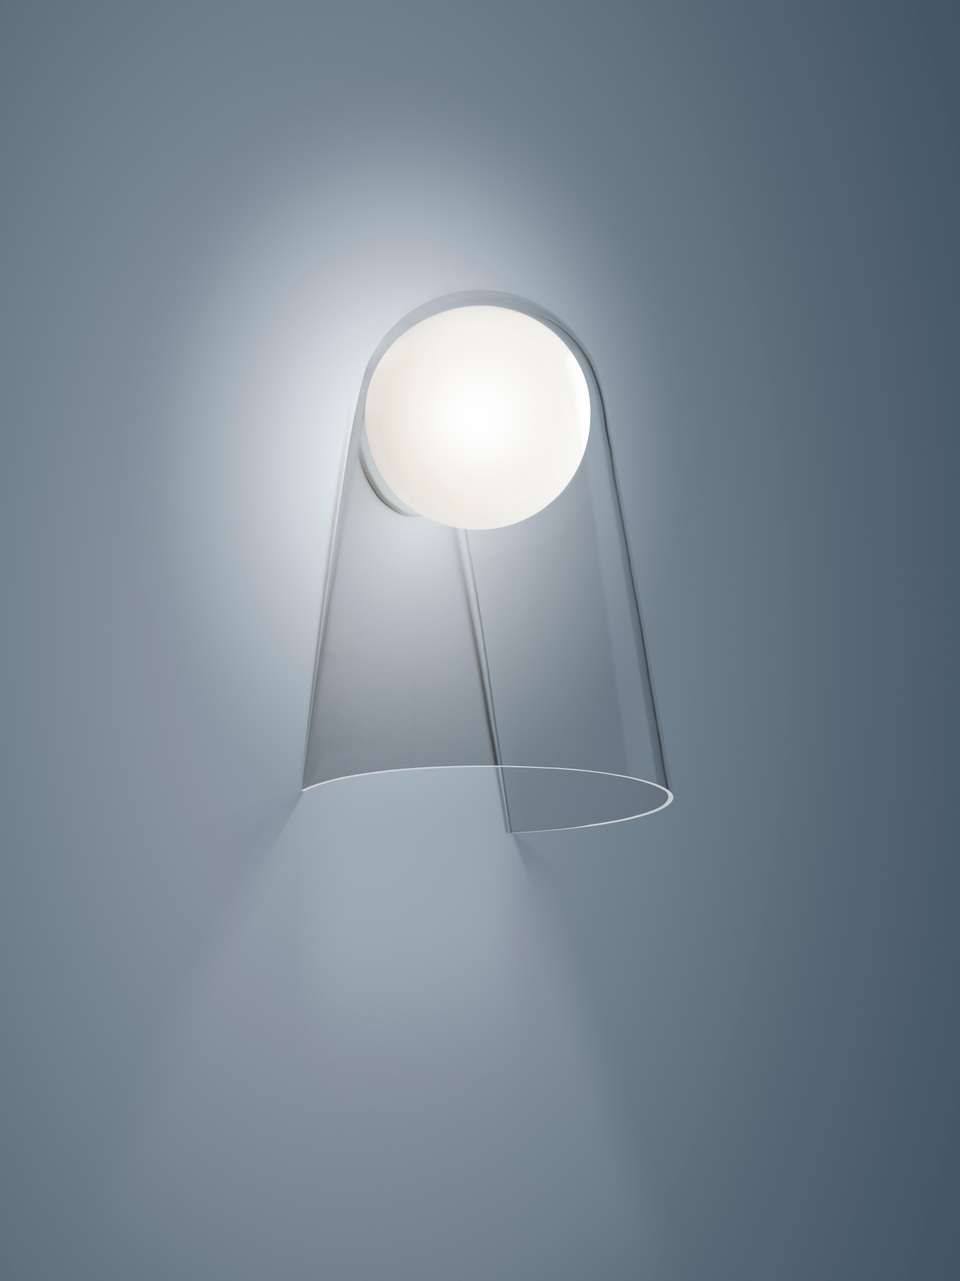 Foscarini Satellight Wall Lamp In White And Transparent By Eugeni Quitllet Wall Lamp Lamp Lamp Design